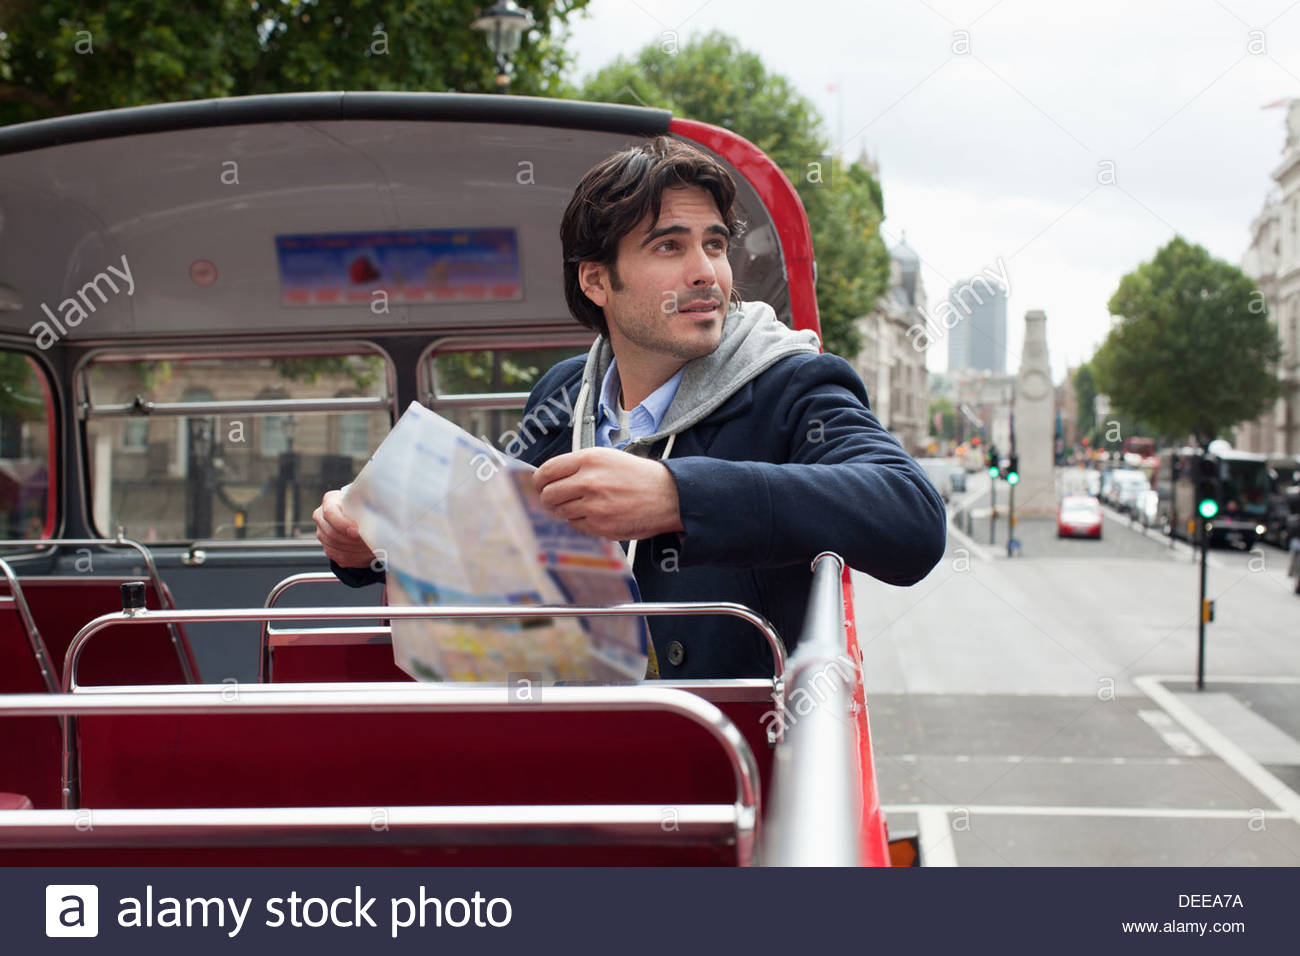 Man with map on double decker bus - Stock Image